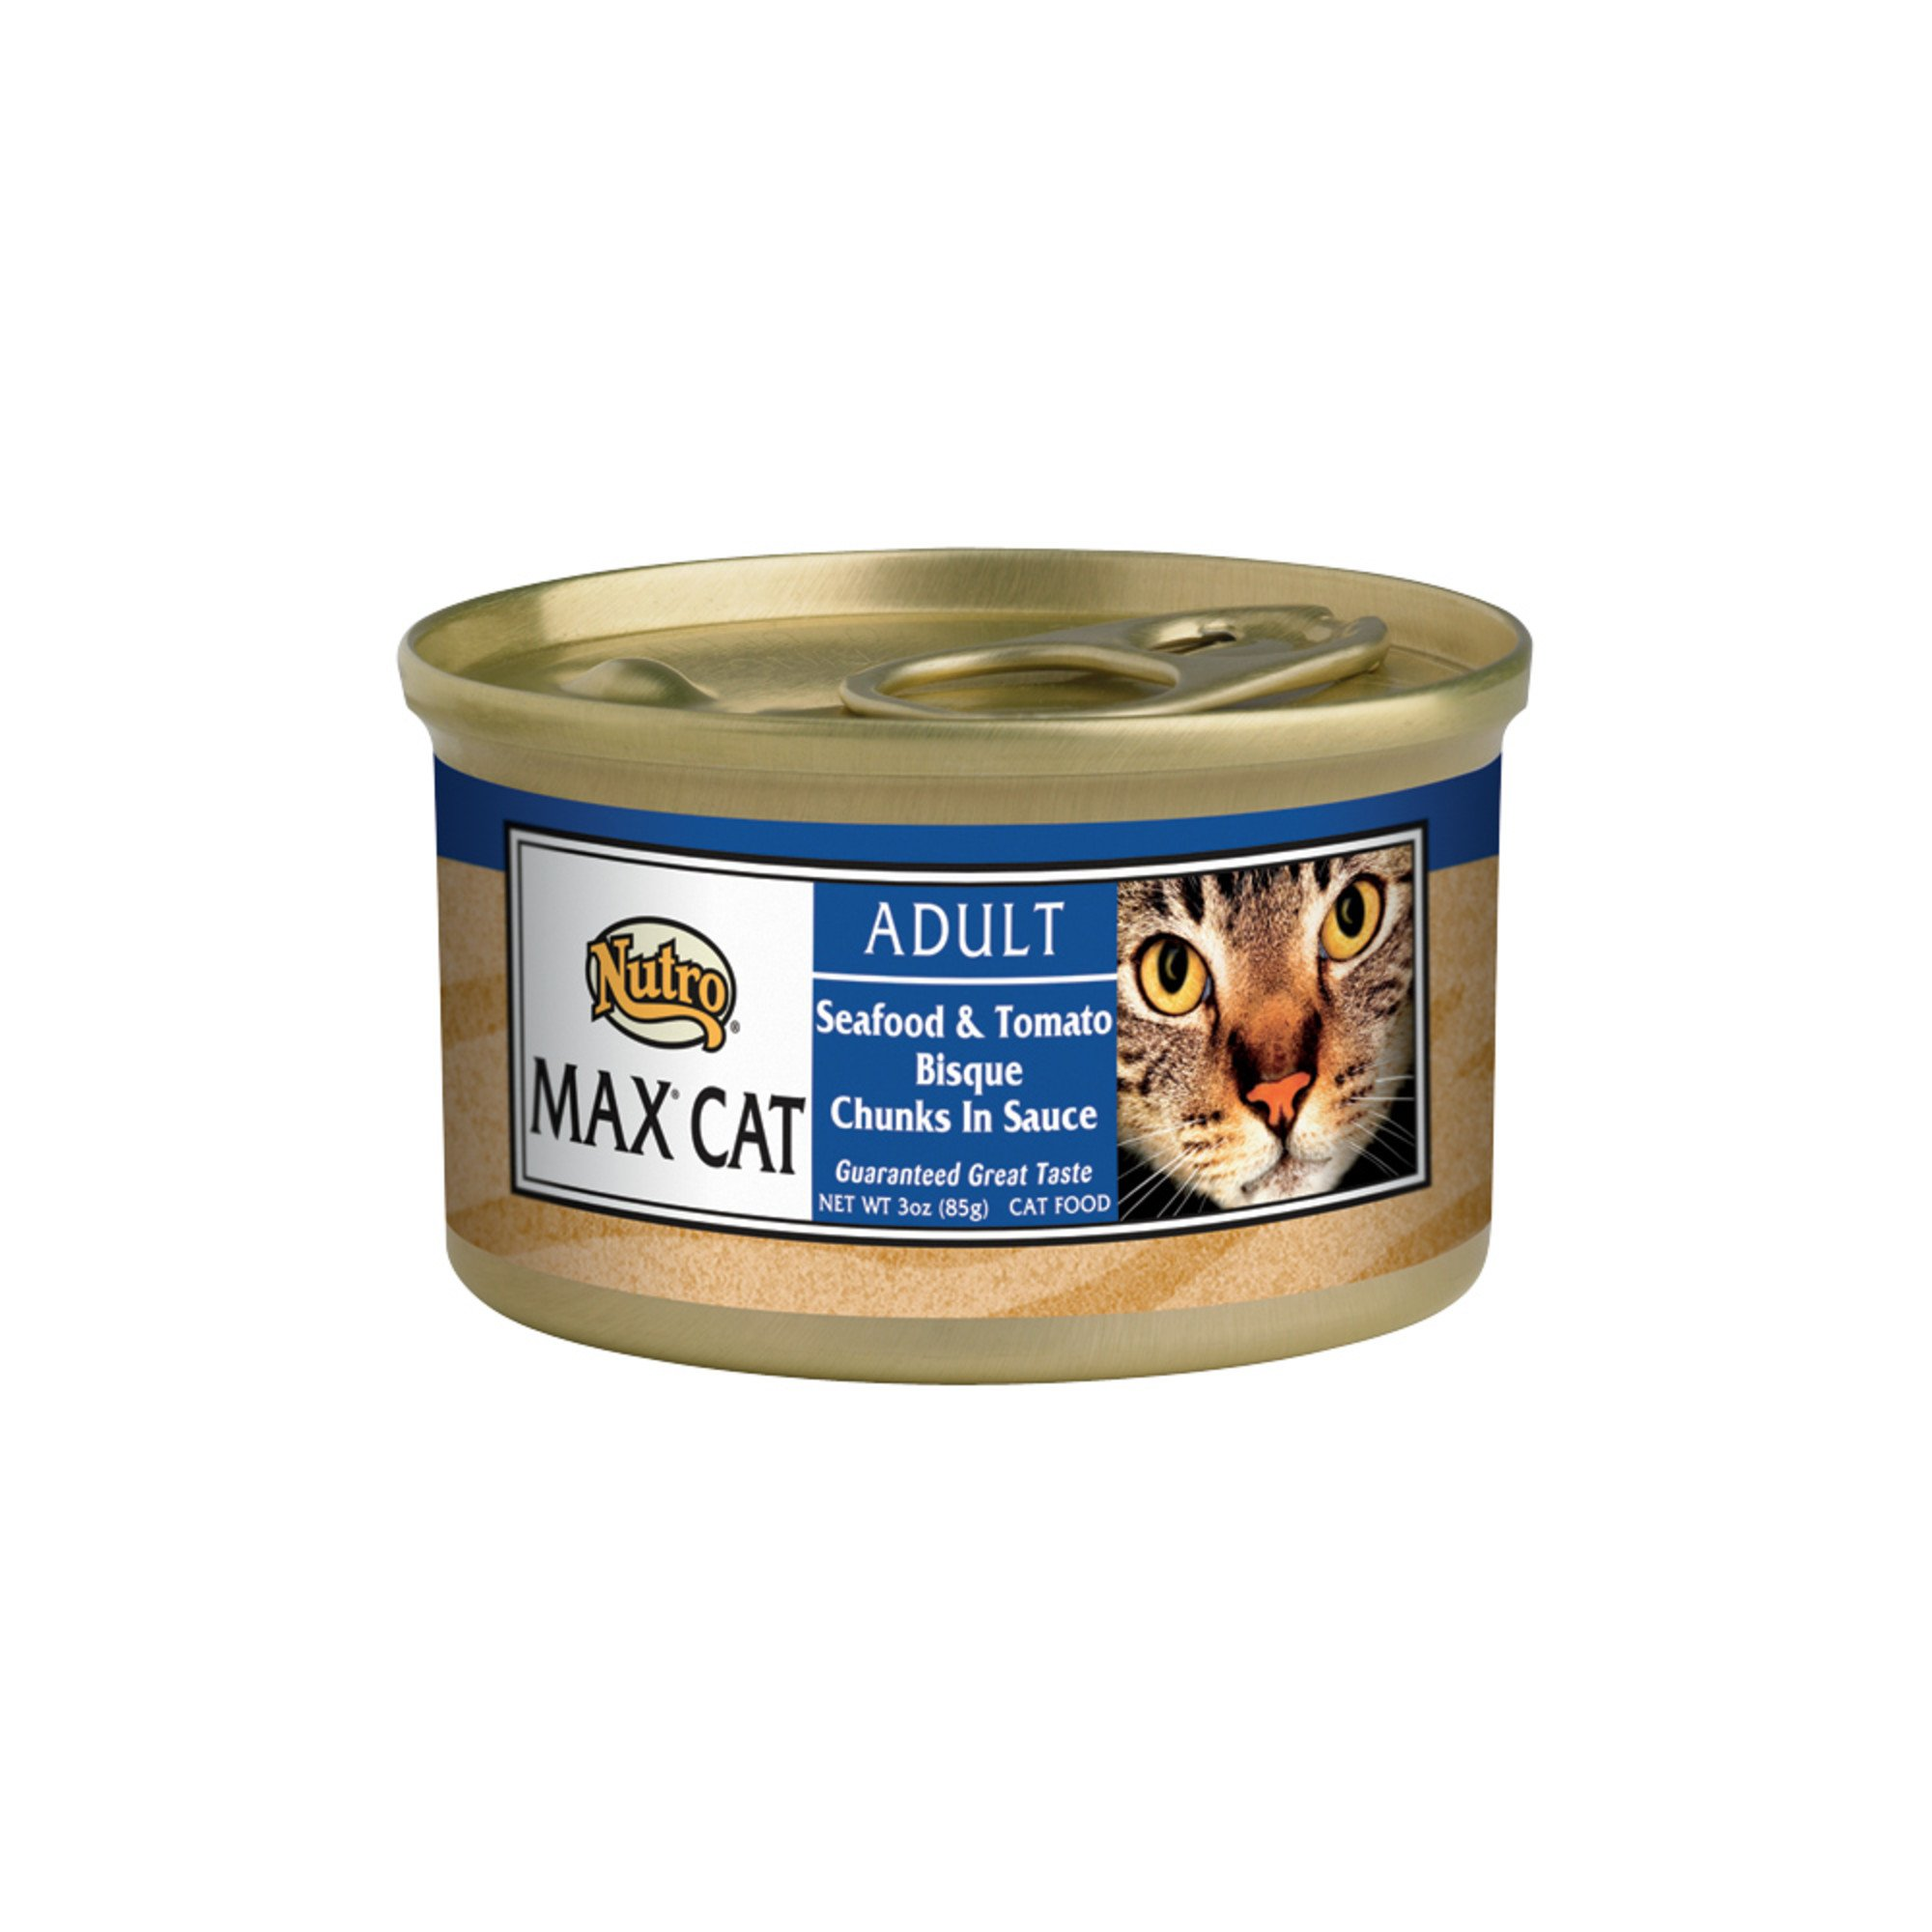 Nutro MAX CAT Gourmet Classics Adult Canned Cat Food, Seafood & Tomato Bisque